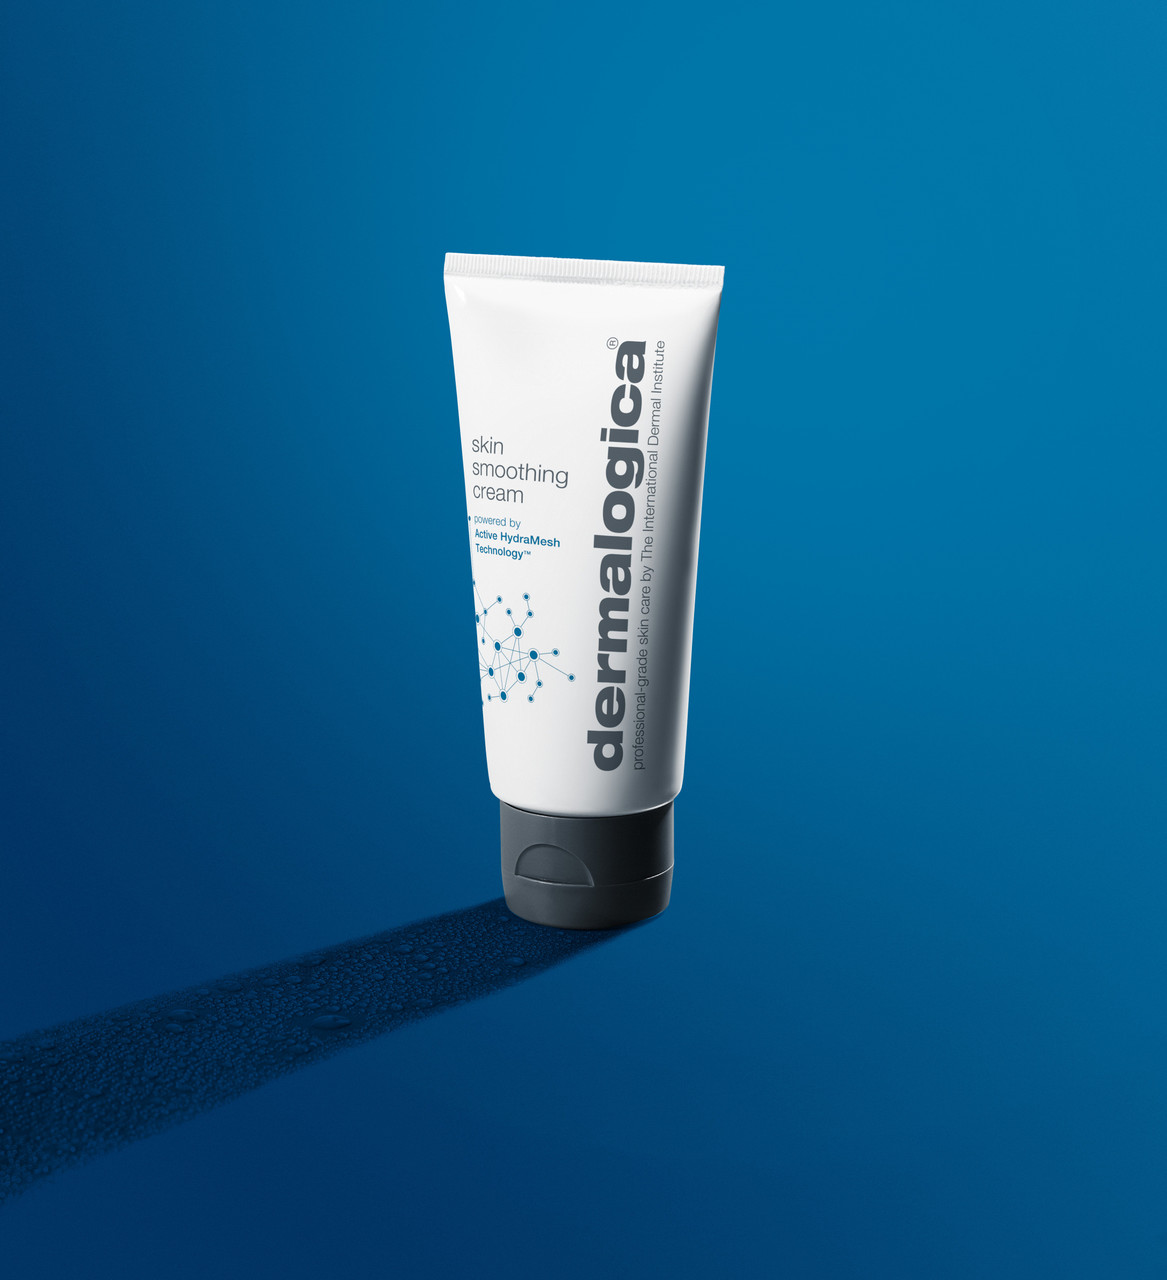 Reformulated Skin Smoothing Cream